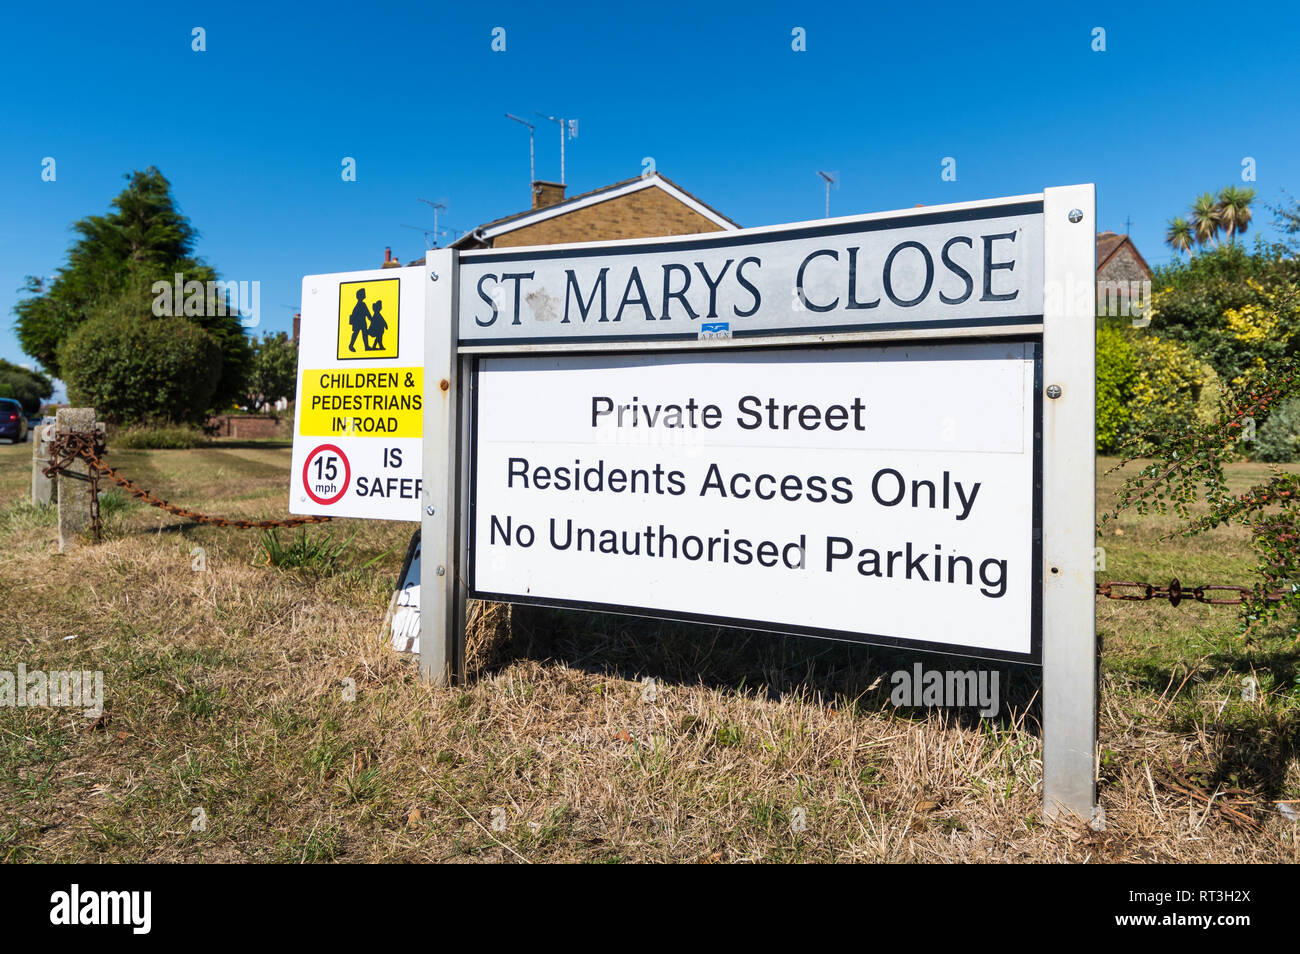 British road name sign fixed in the ground for a close, for a private road with residents access only and no unauthorised parking, in England, UK. - Stock Image